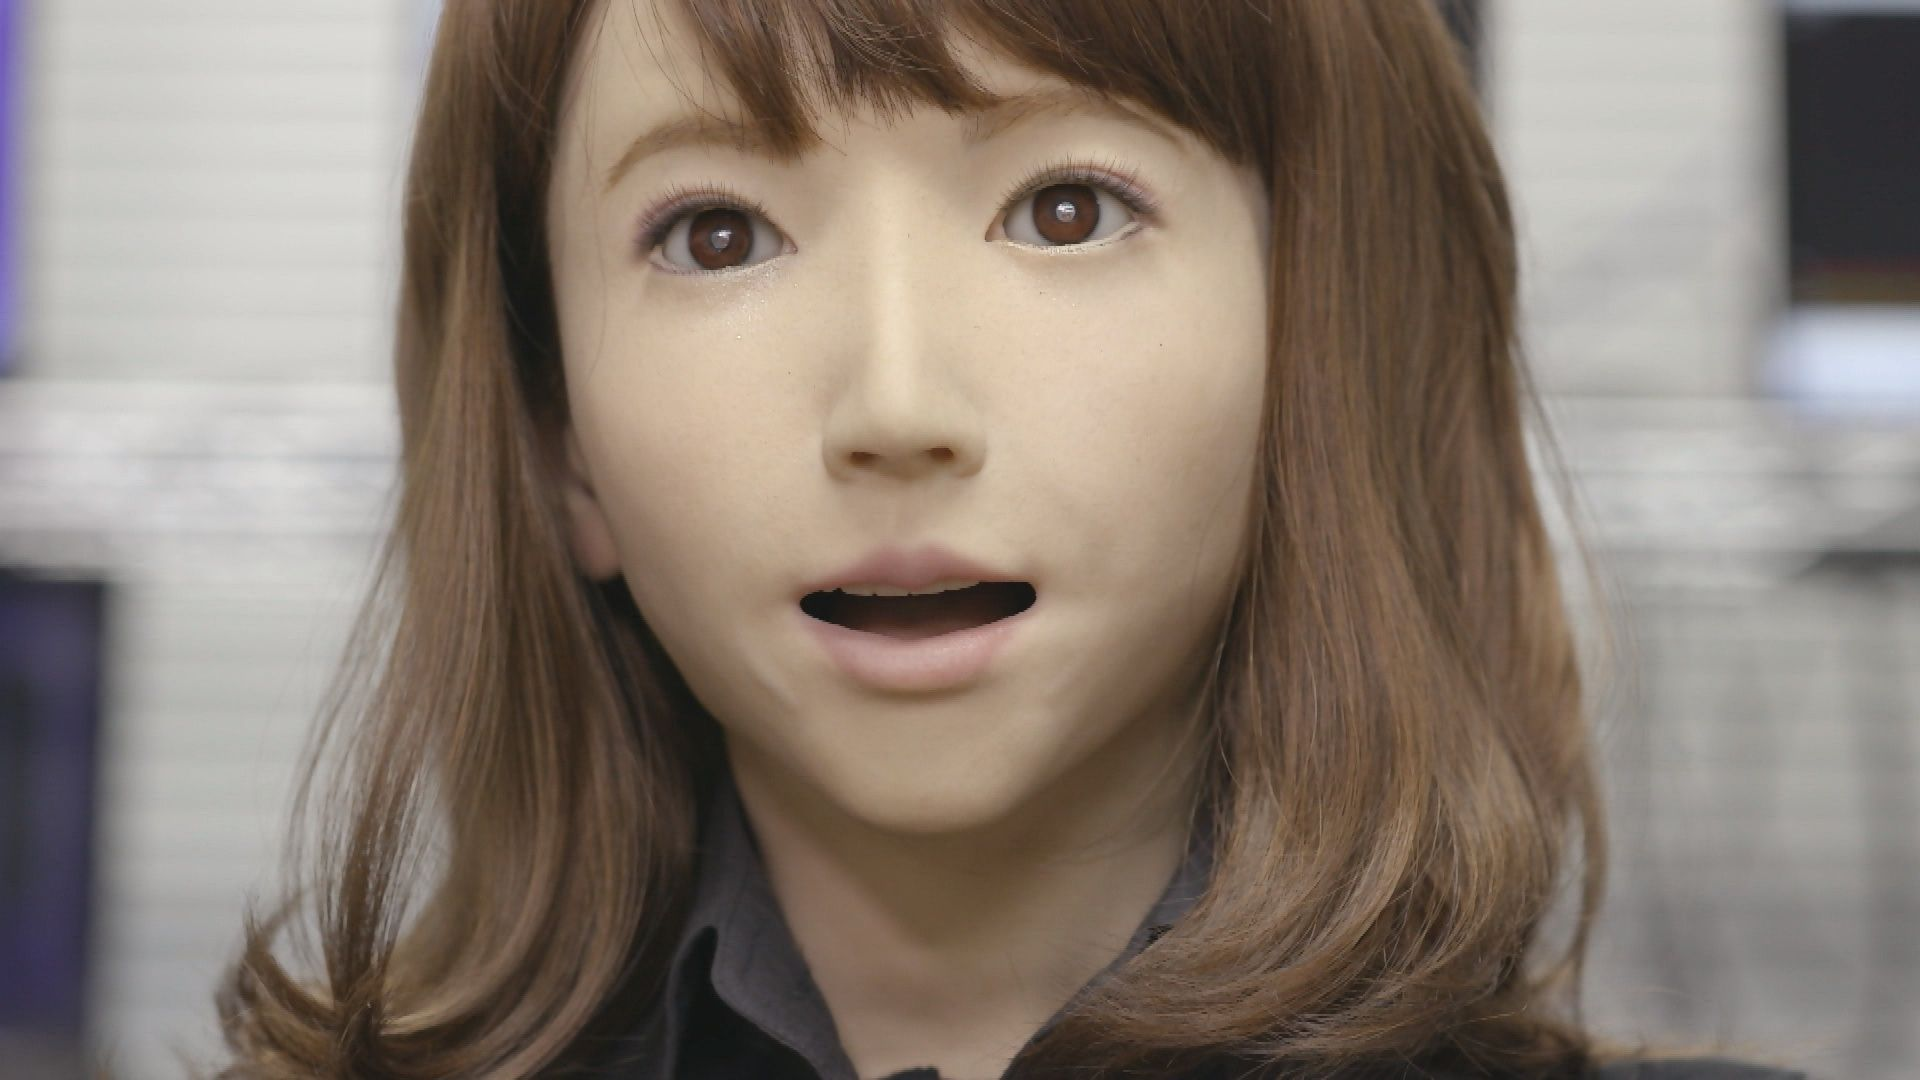 A 23-year old Japanese robot named Erica, is set to make her debut as a news anchor in April this year and considers herself an actual person.